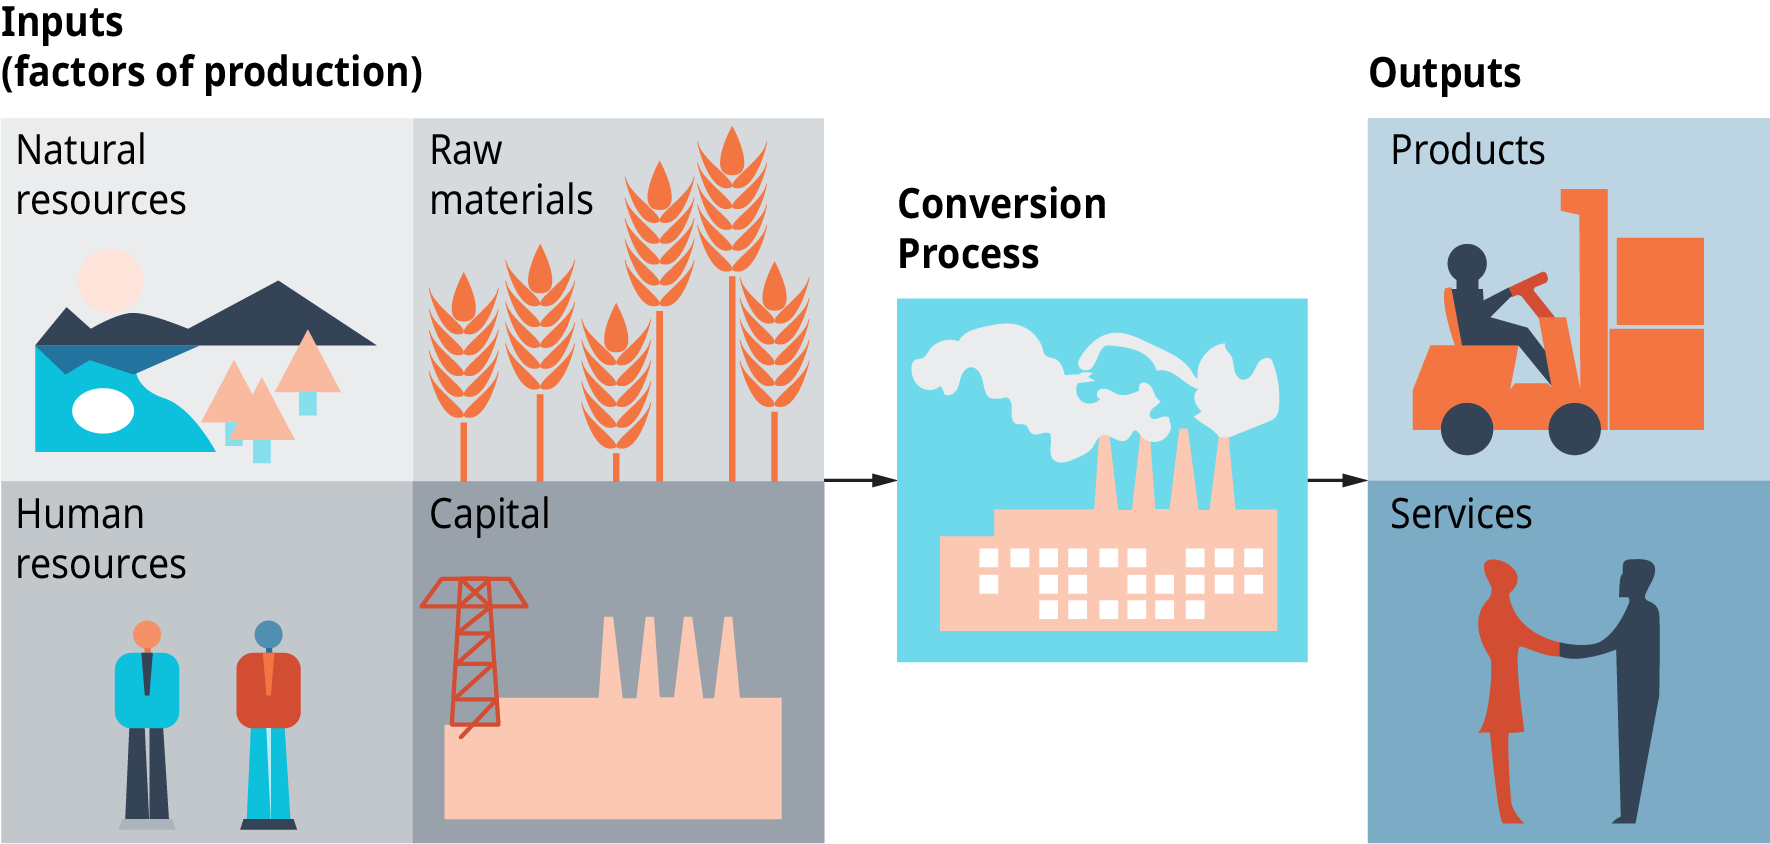 Production Process for Products and Services. The diagram shows that inputs, which are factors of production, include the following: natural resources, human resources, raw materials, and capital. A conversion process takes place, which produces outputs which are products and services. Another way of saying this is that the Production Process for Products and Services converts inputs of natural resources, raw materials, human resources, and capital, into products and services.